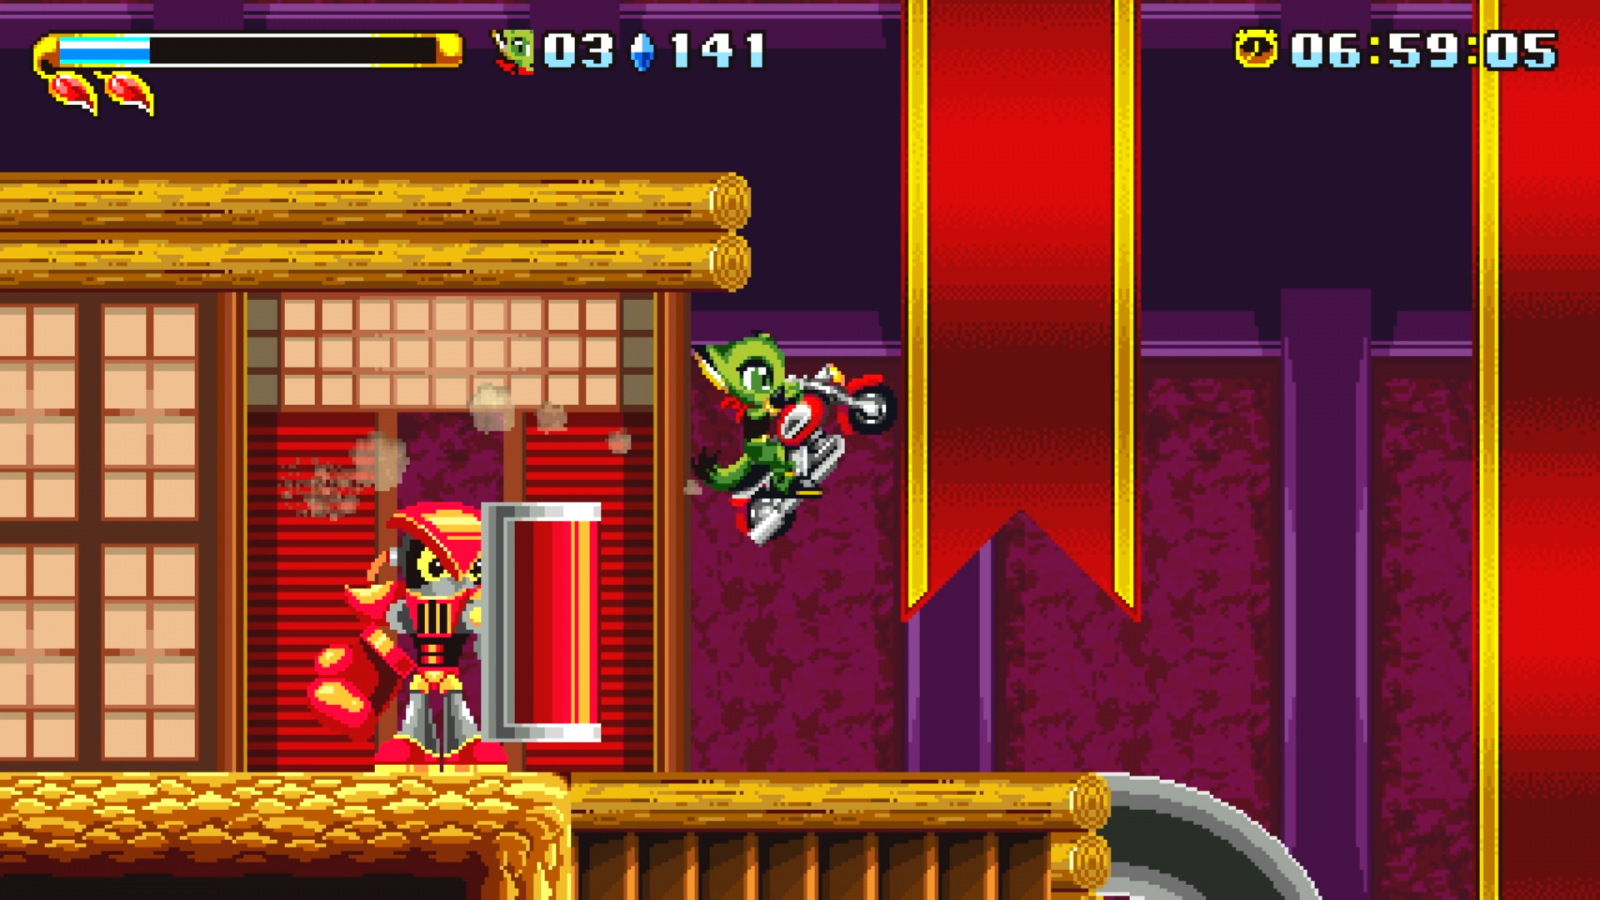 Freedom Planet - A Game by GalaxyTrail